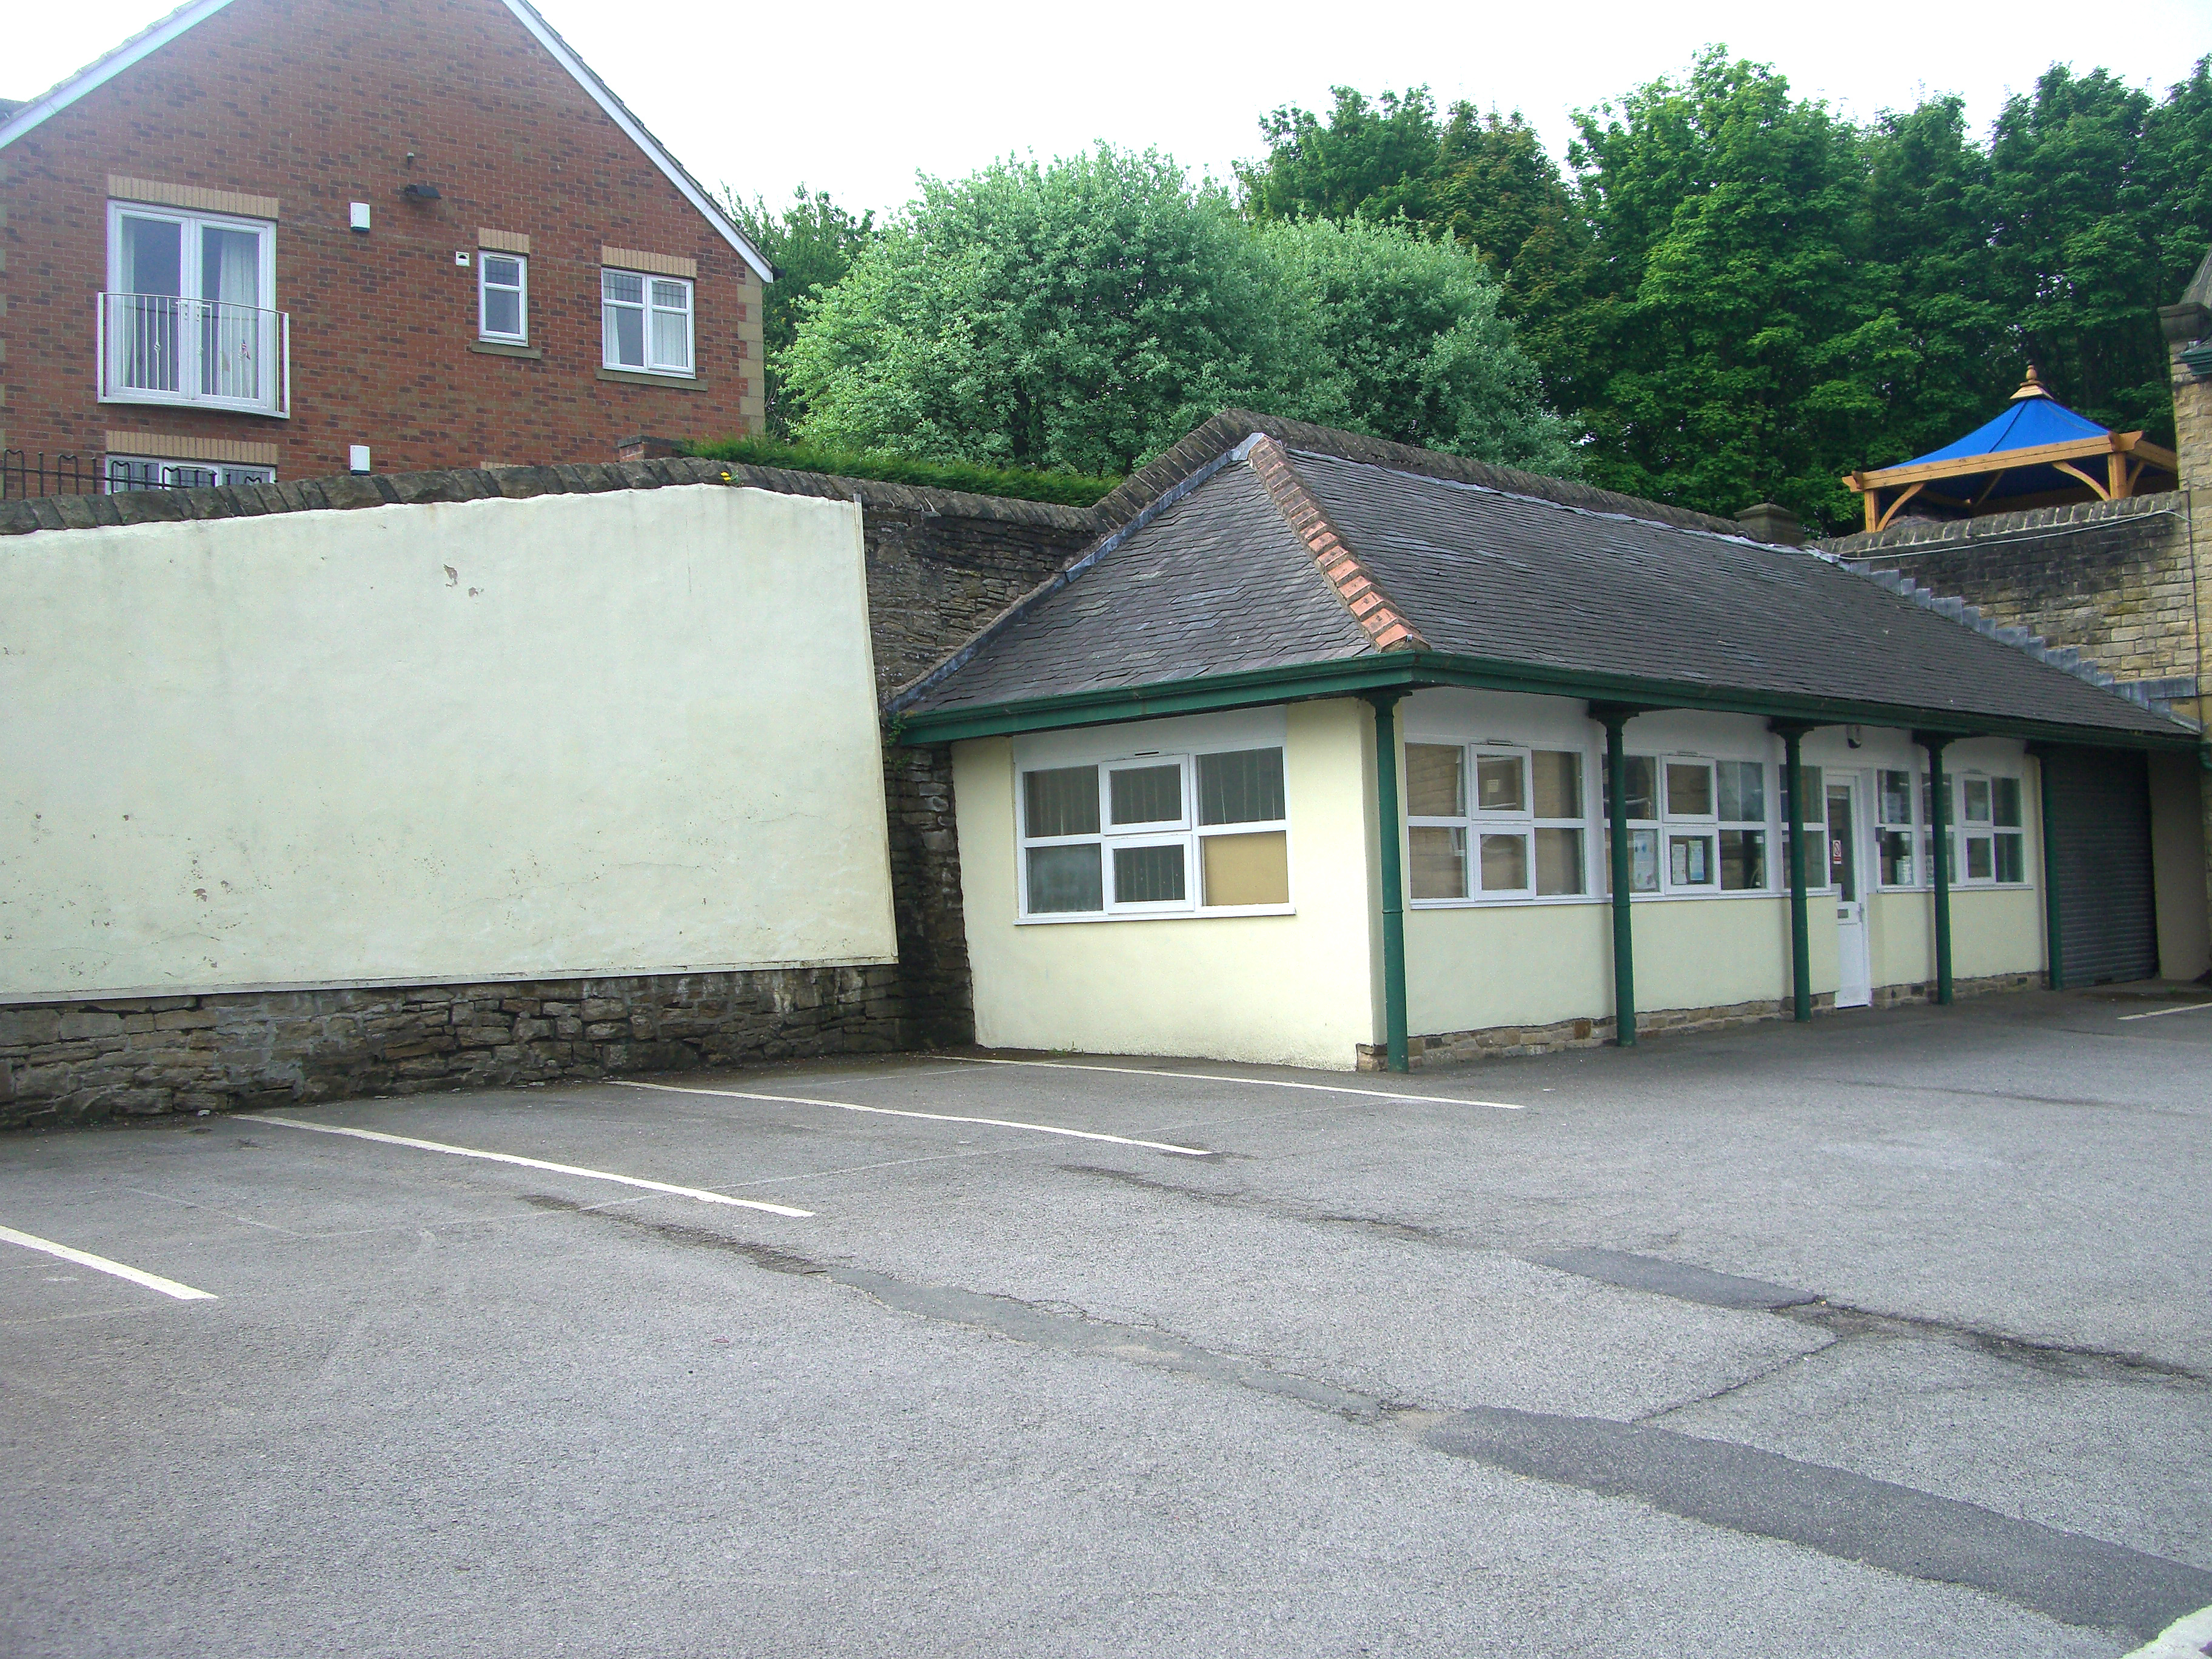 Building a shed on a hill - File Bole Hill School Rear Boundary Wall And Shed 2 Jpg